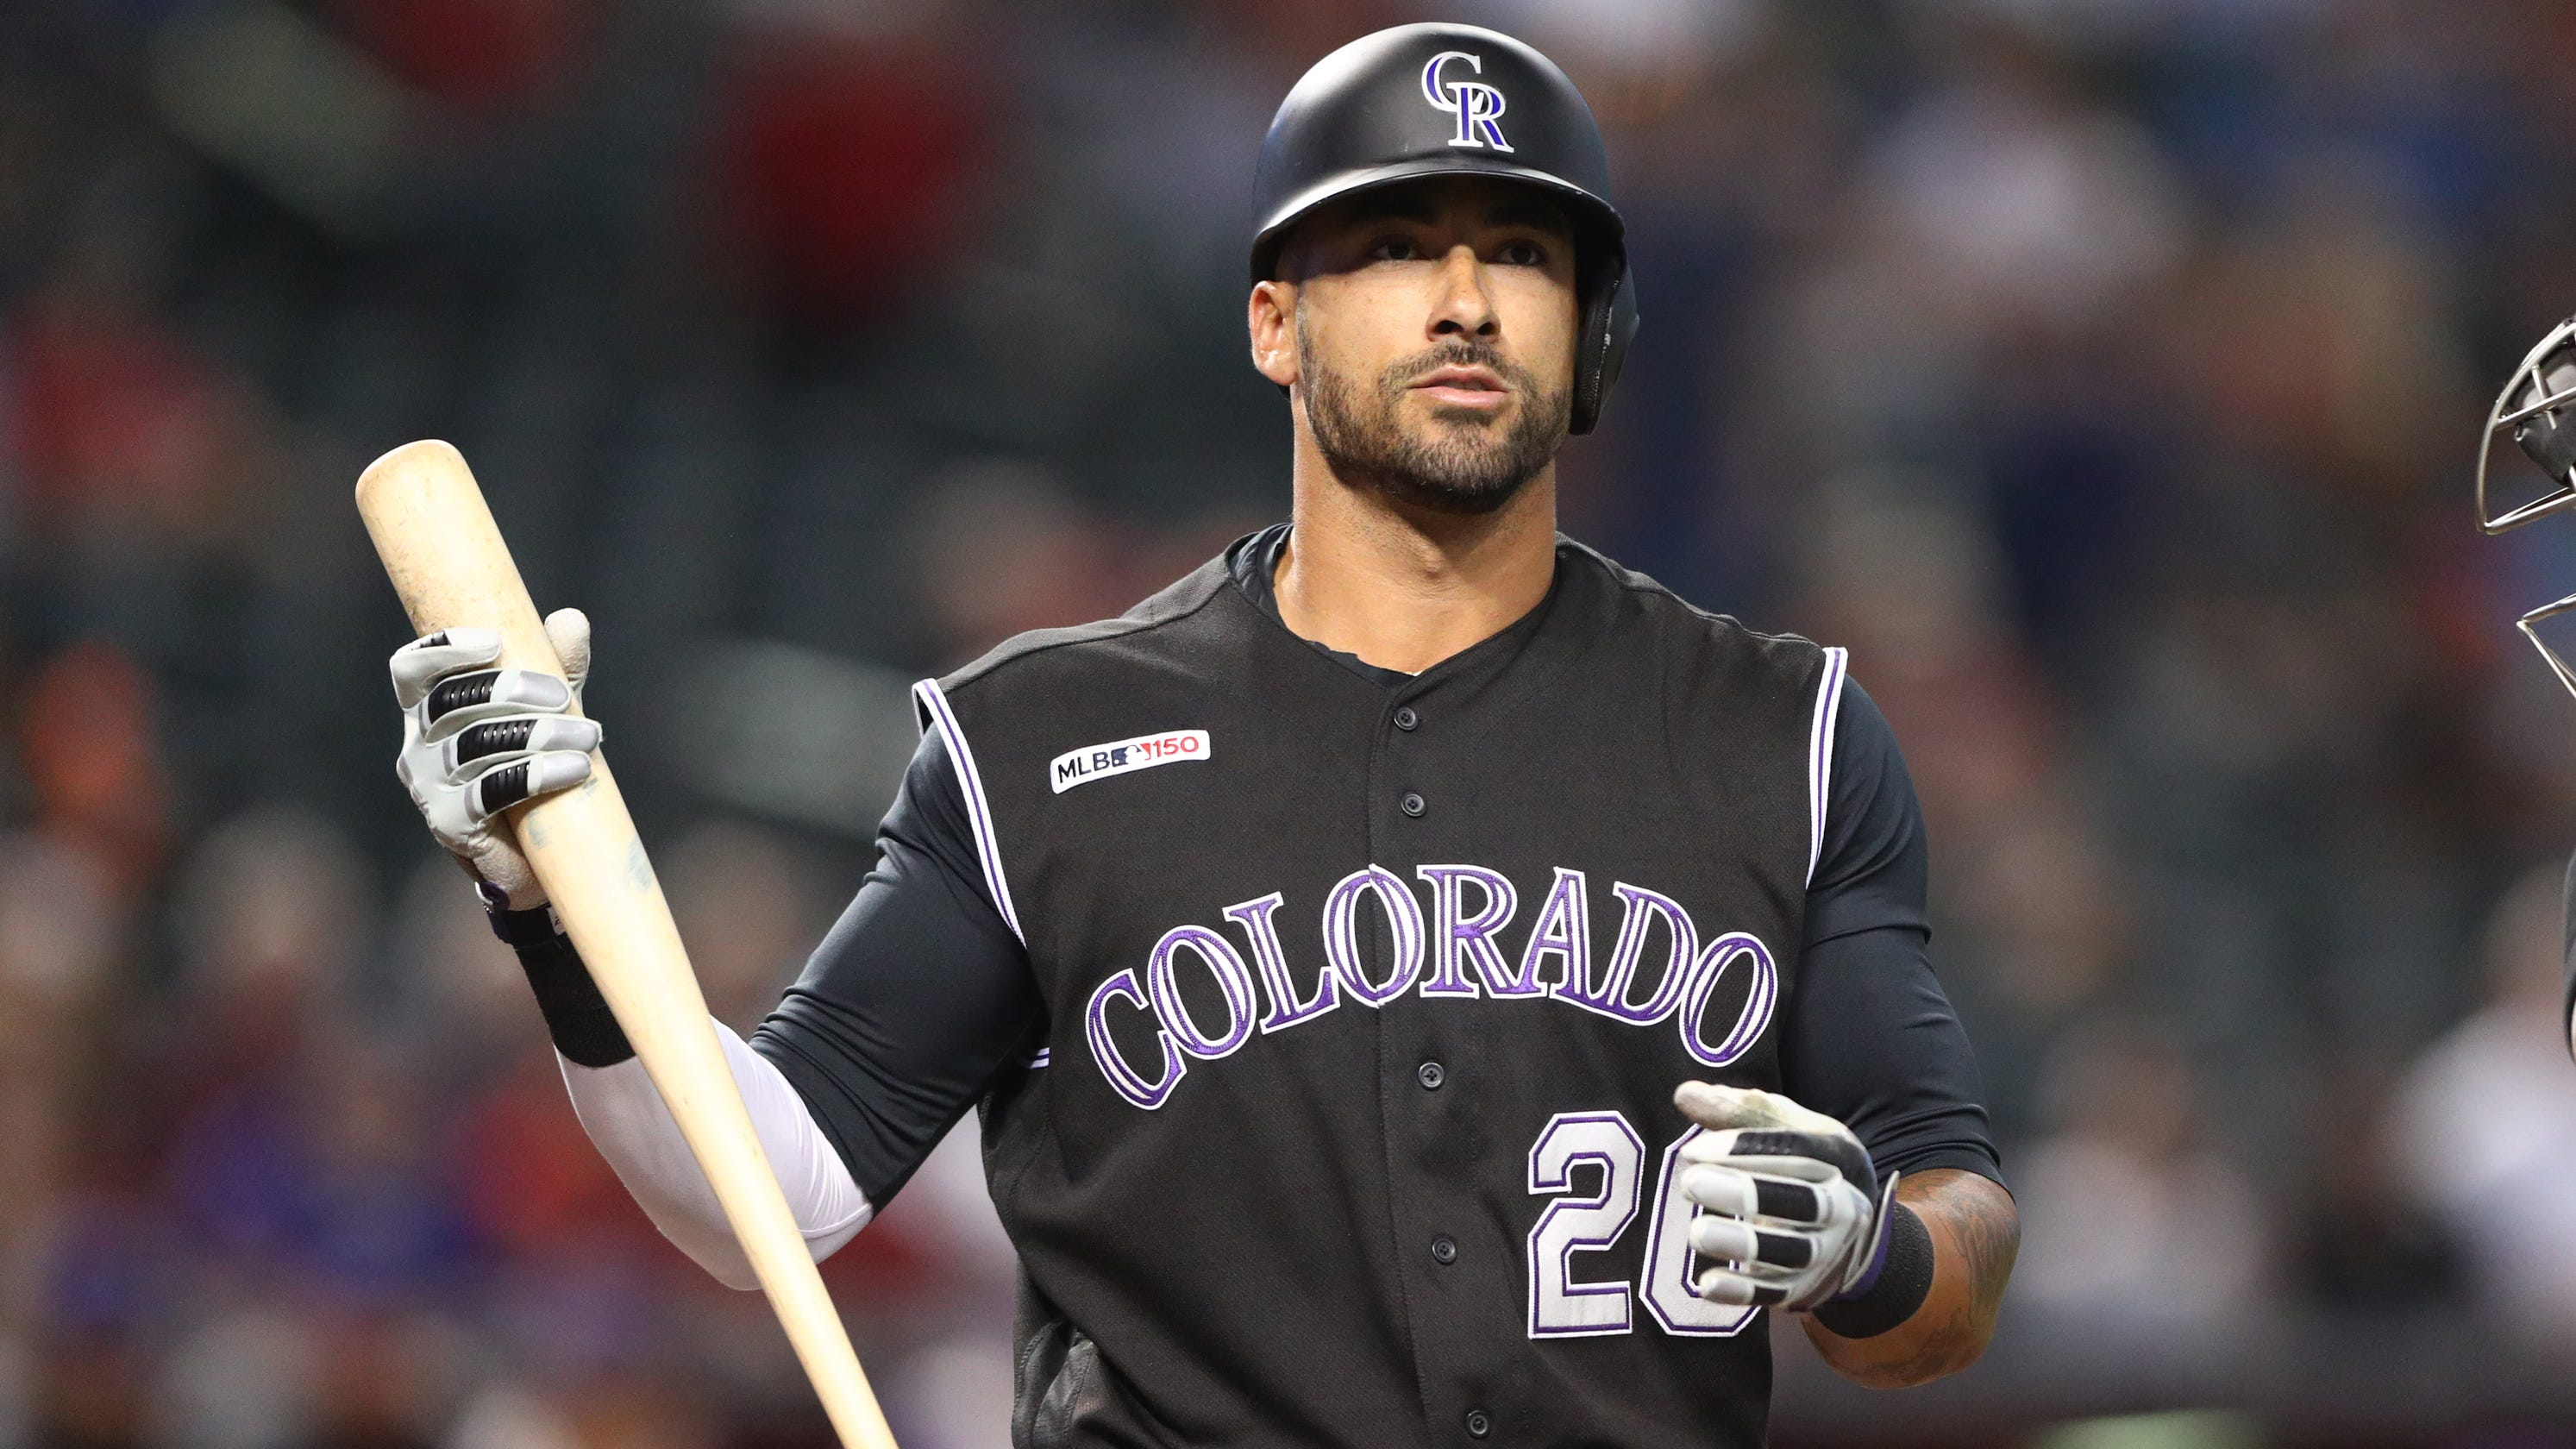 Ian Desmond of Rockies opts out of abbreviated season